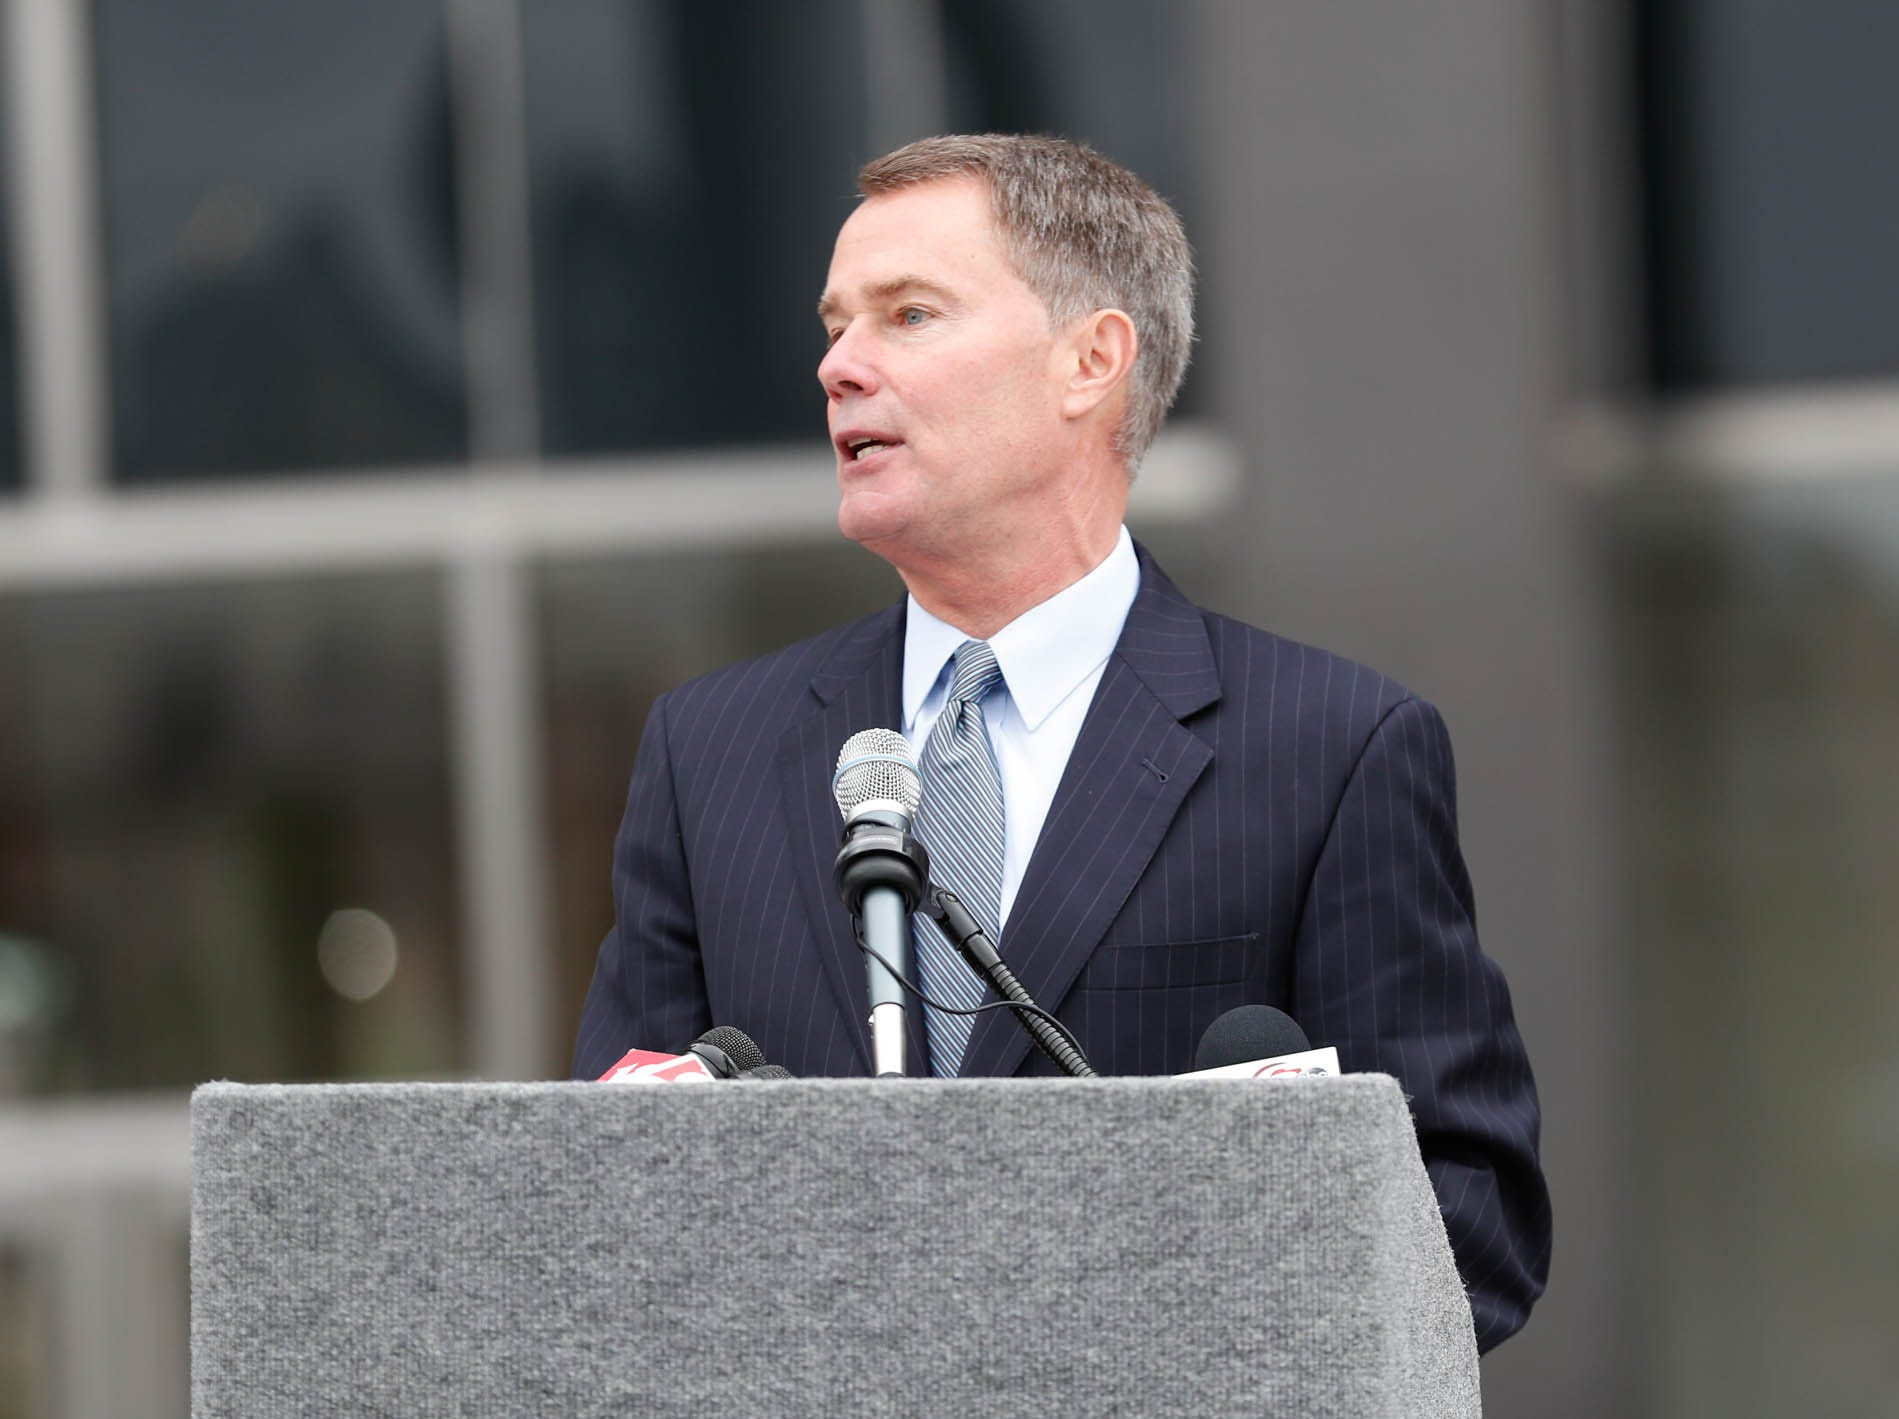 Mayor of Indianapolis, Joe Hogsett speaks  during the reopening and dedication of Richard G. Lugar Plaza at the City-County Building in Indianapolis on Thursday, Oct. 11, 2018.